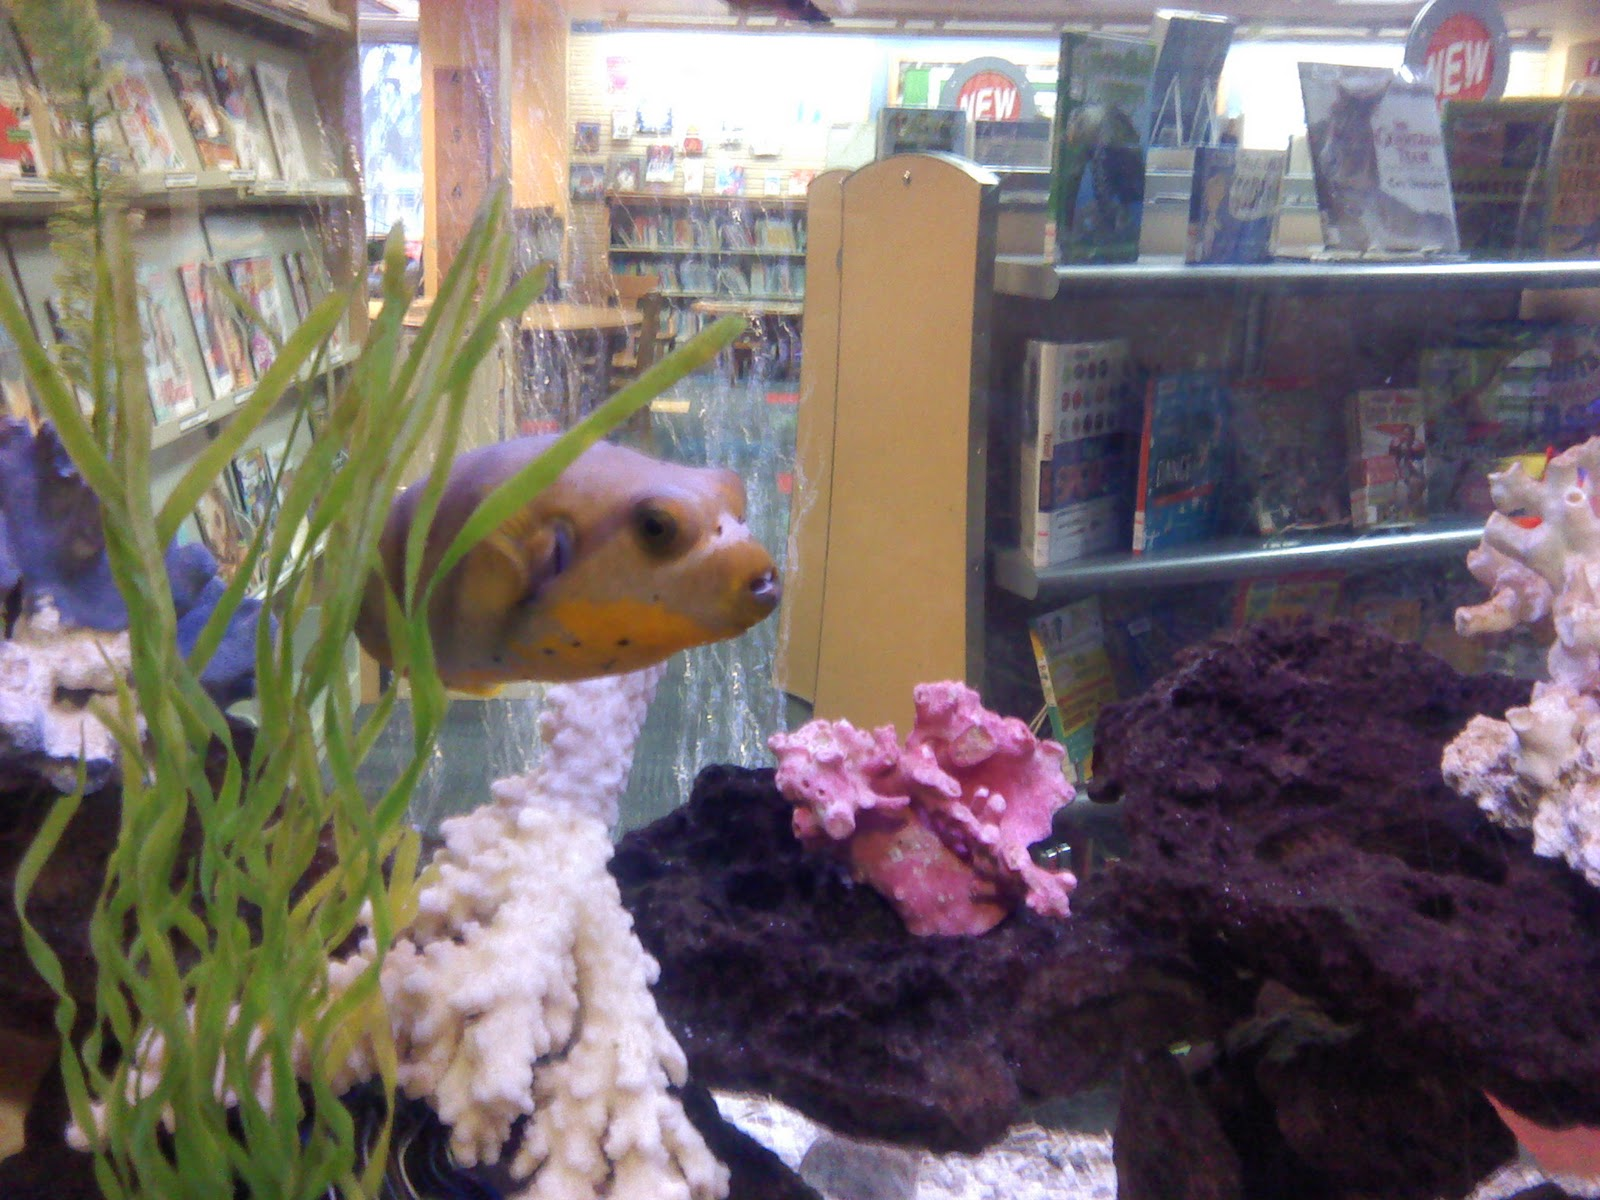 Freshwater aquarium fish library - Aside From All The Book They Had Some Nice Learning Toys As Well